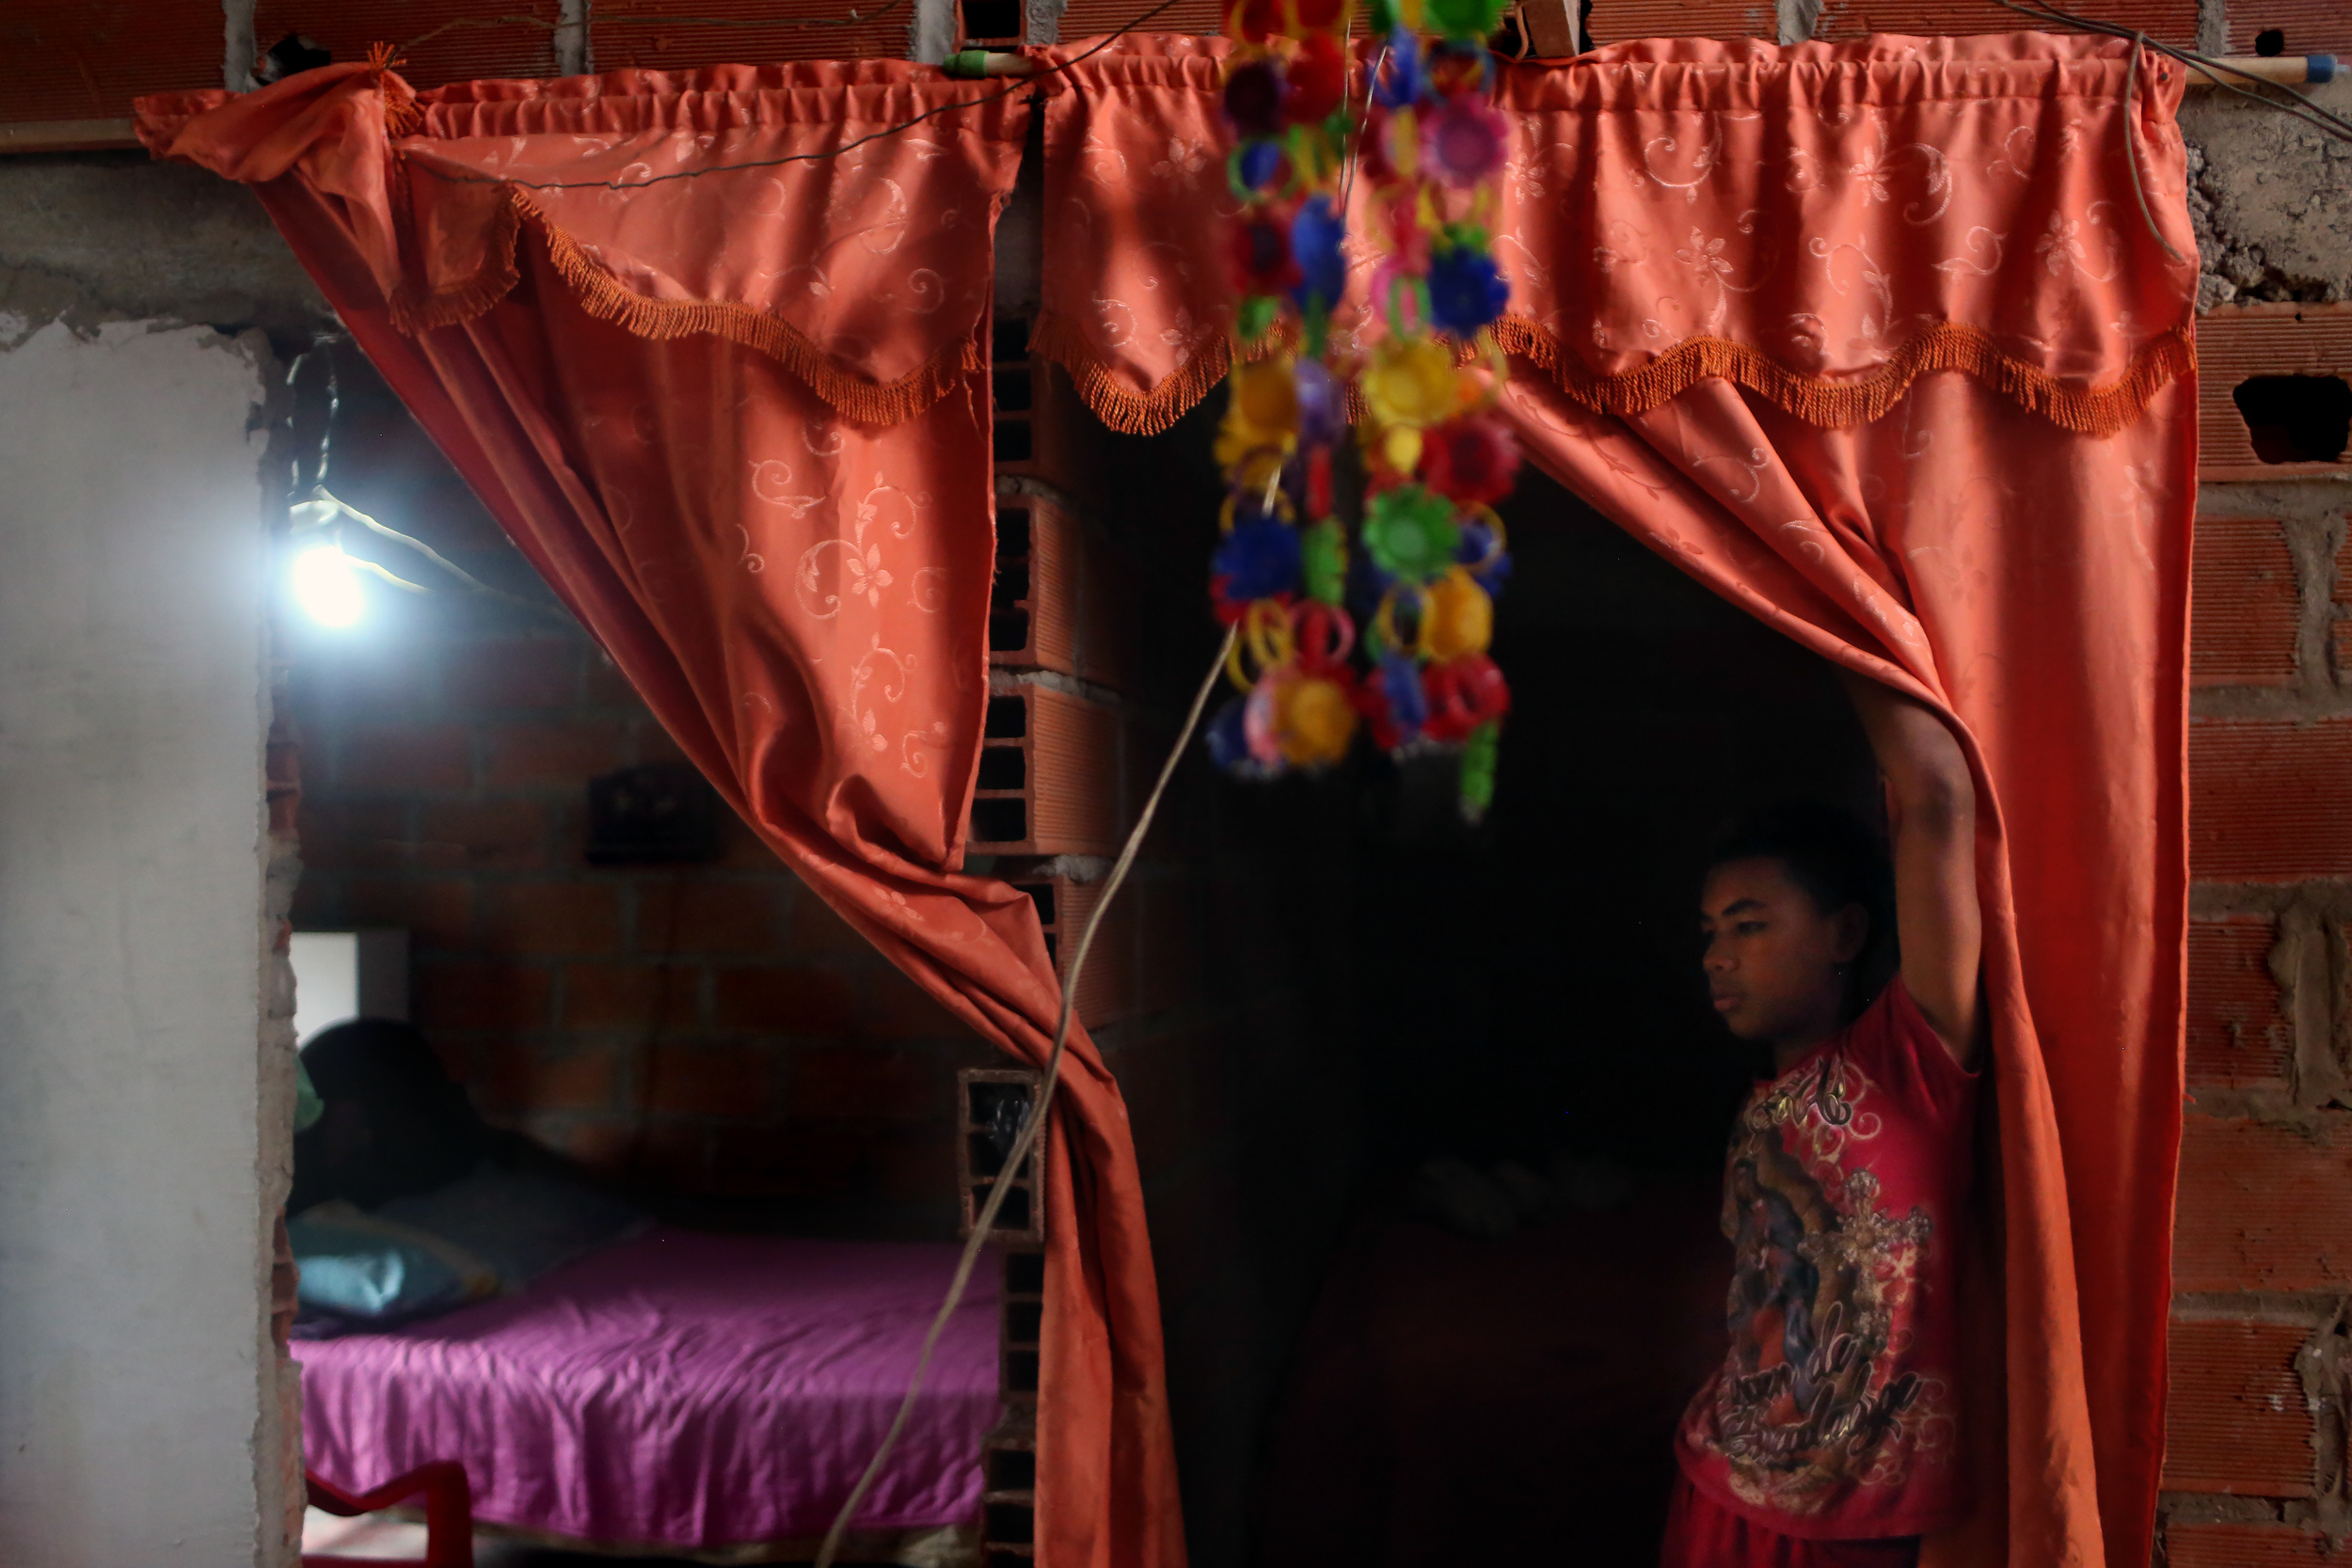 Jose Molinares Cruz stands at the door of his bedroom in Turbo which he shares with sister, Paula Molinares, 10, who is currently being treated for Guillain-Barre in Montería, Colombia on February 17, 2016. Fears of the Zika virus that is spreading across the Americas have been linked to birth defects, but health experts believe the sudden rise in Guillain-Barre cases may also be connected.